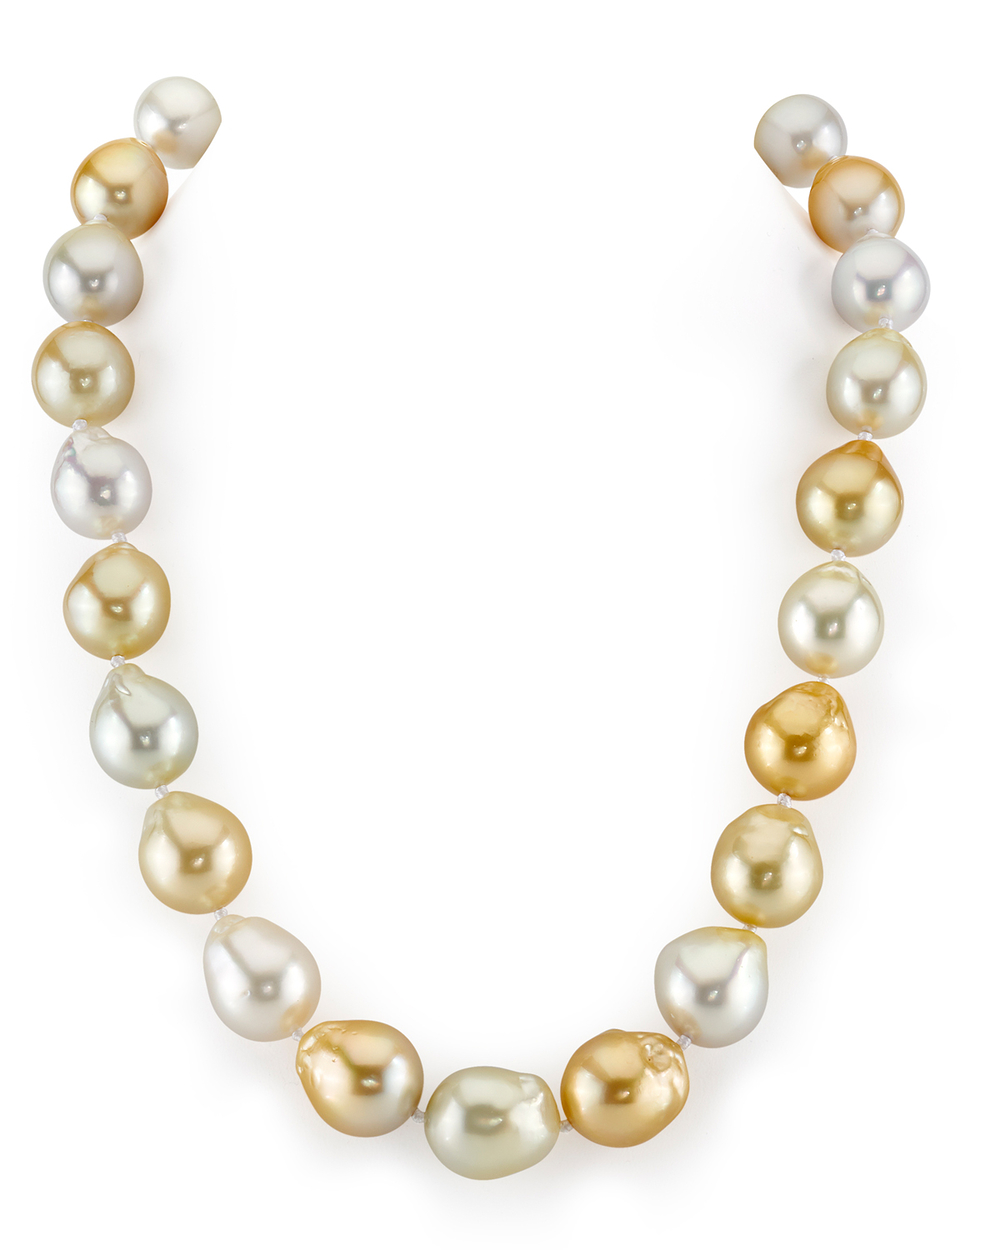 13-15mm South Sea Multicolor Baroque Pearl Necklace